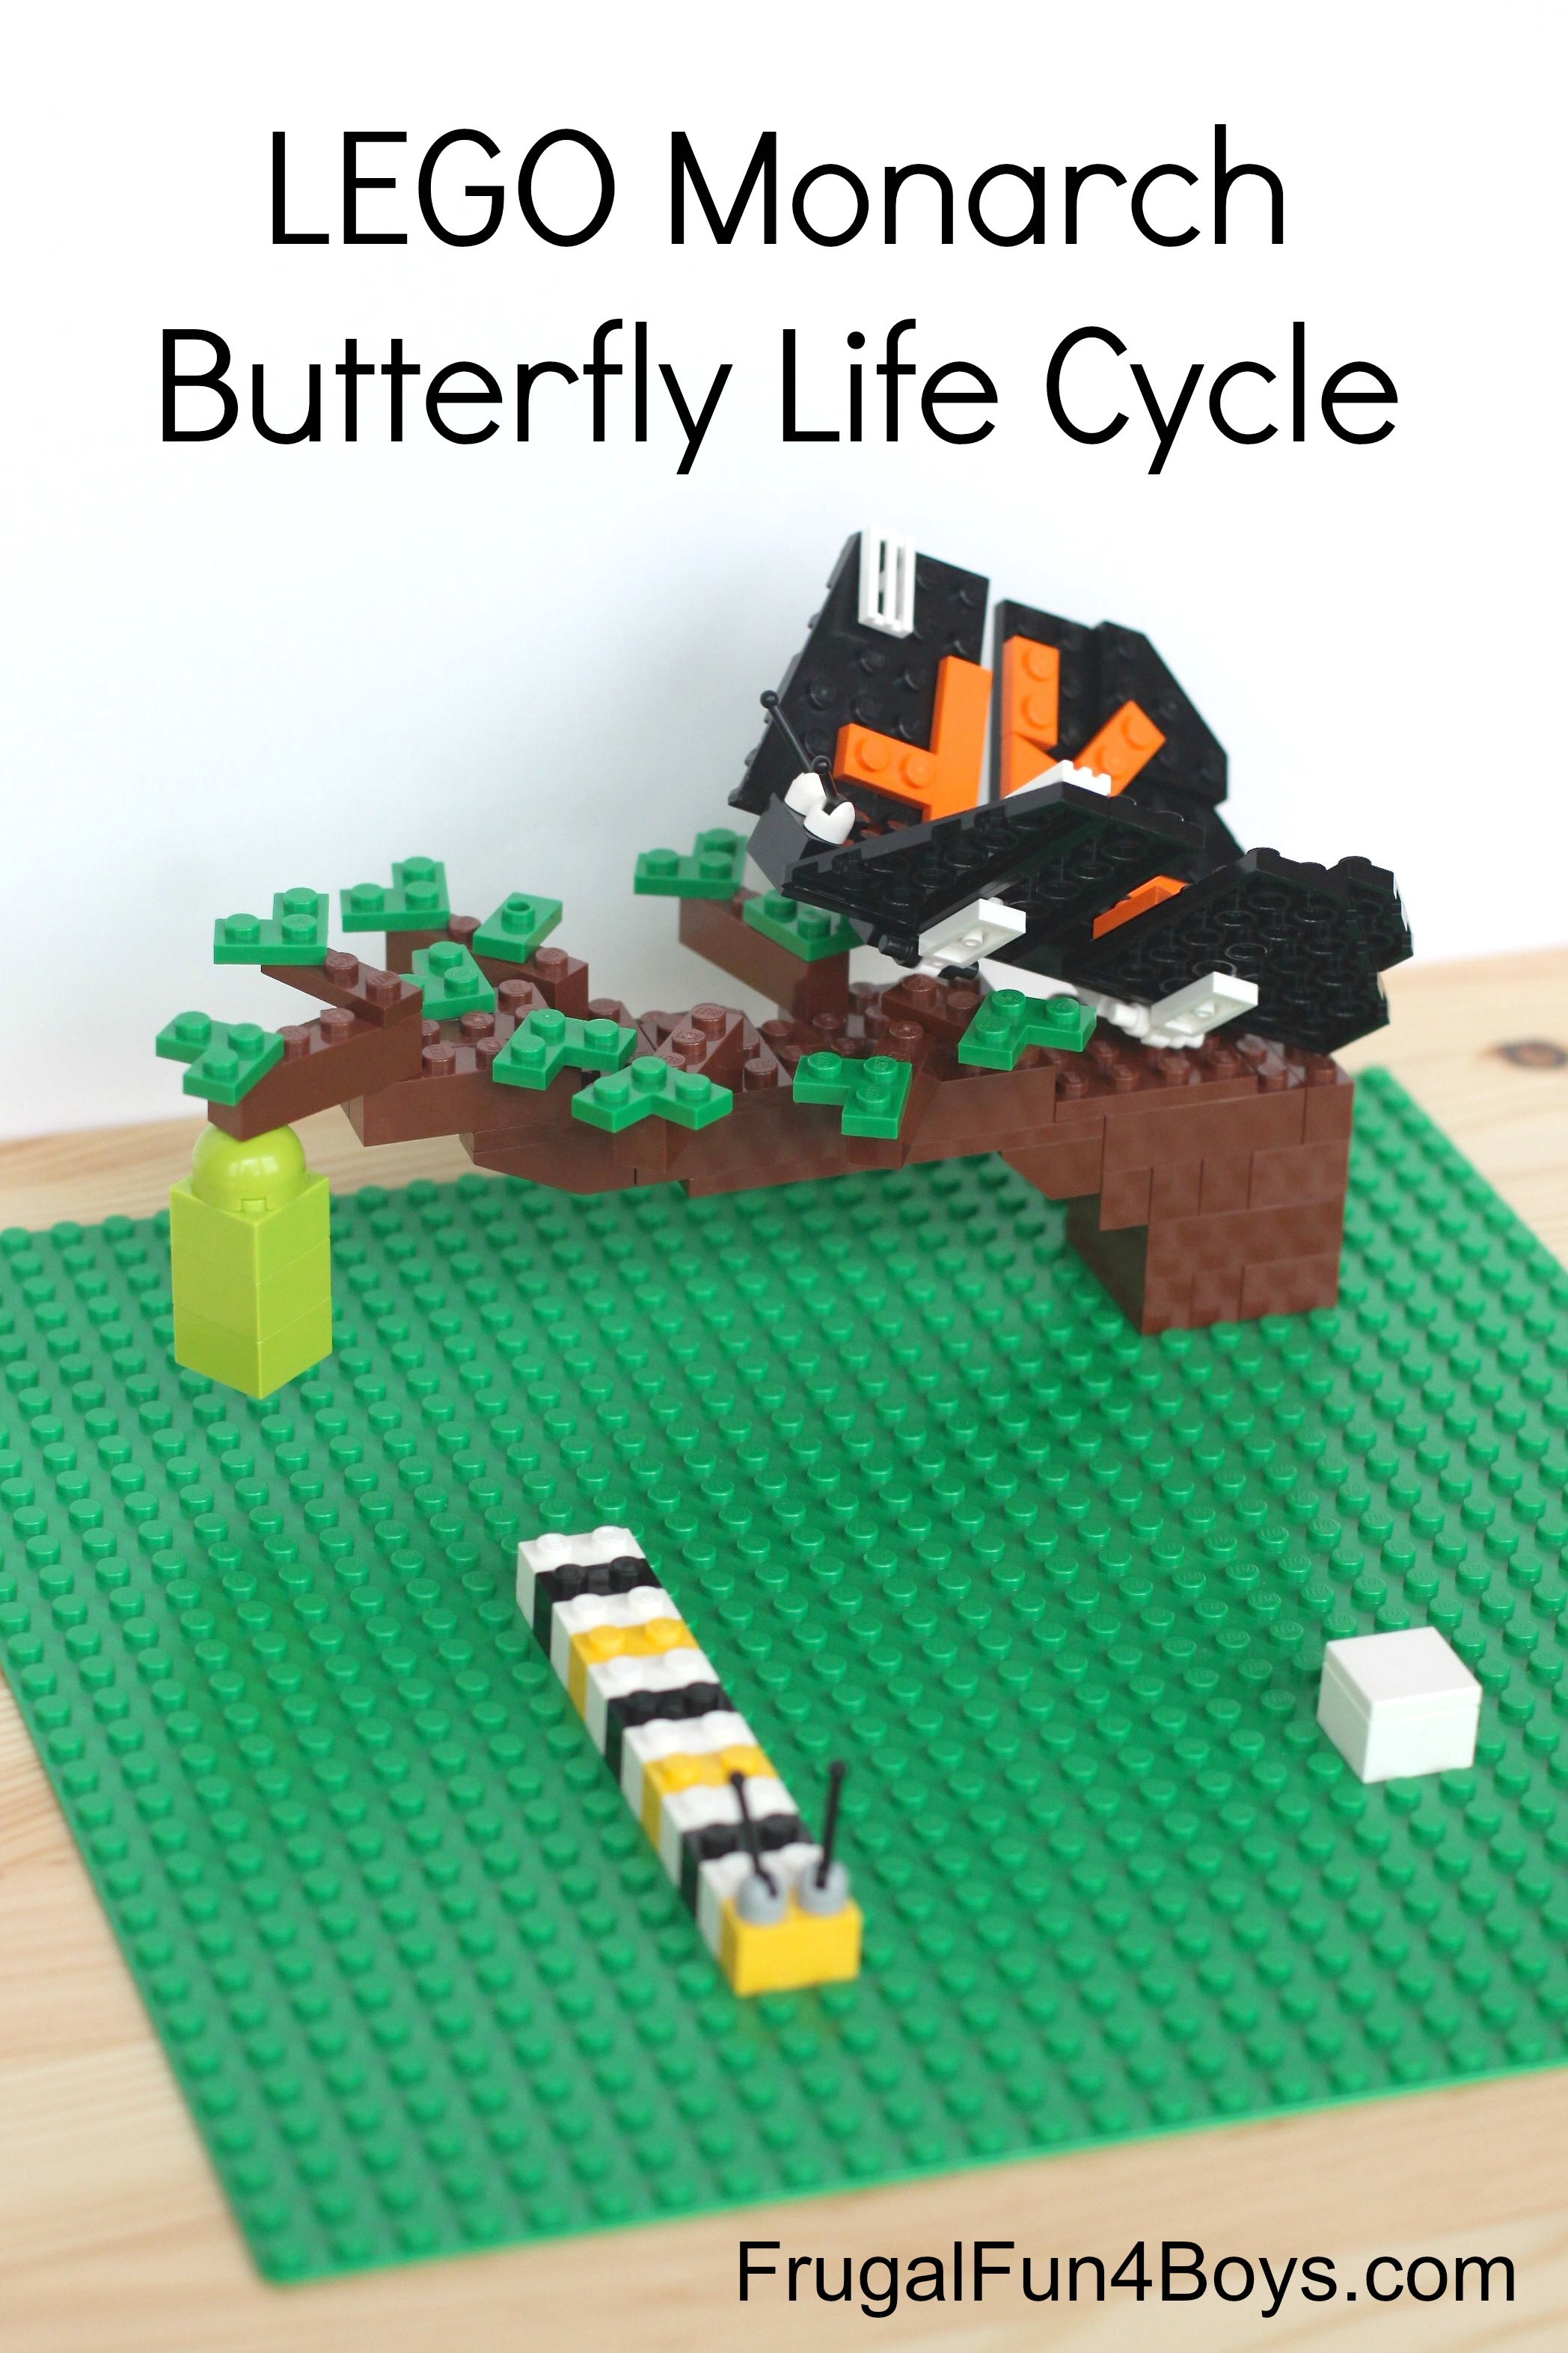 Build the Monarch Butterfly Life Cycle with LEGOs